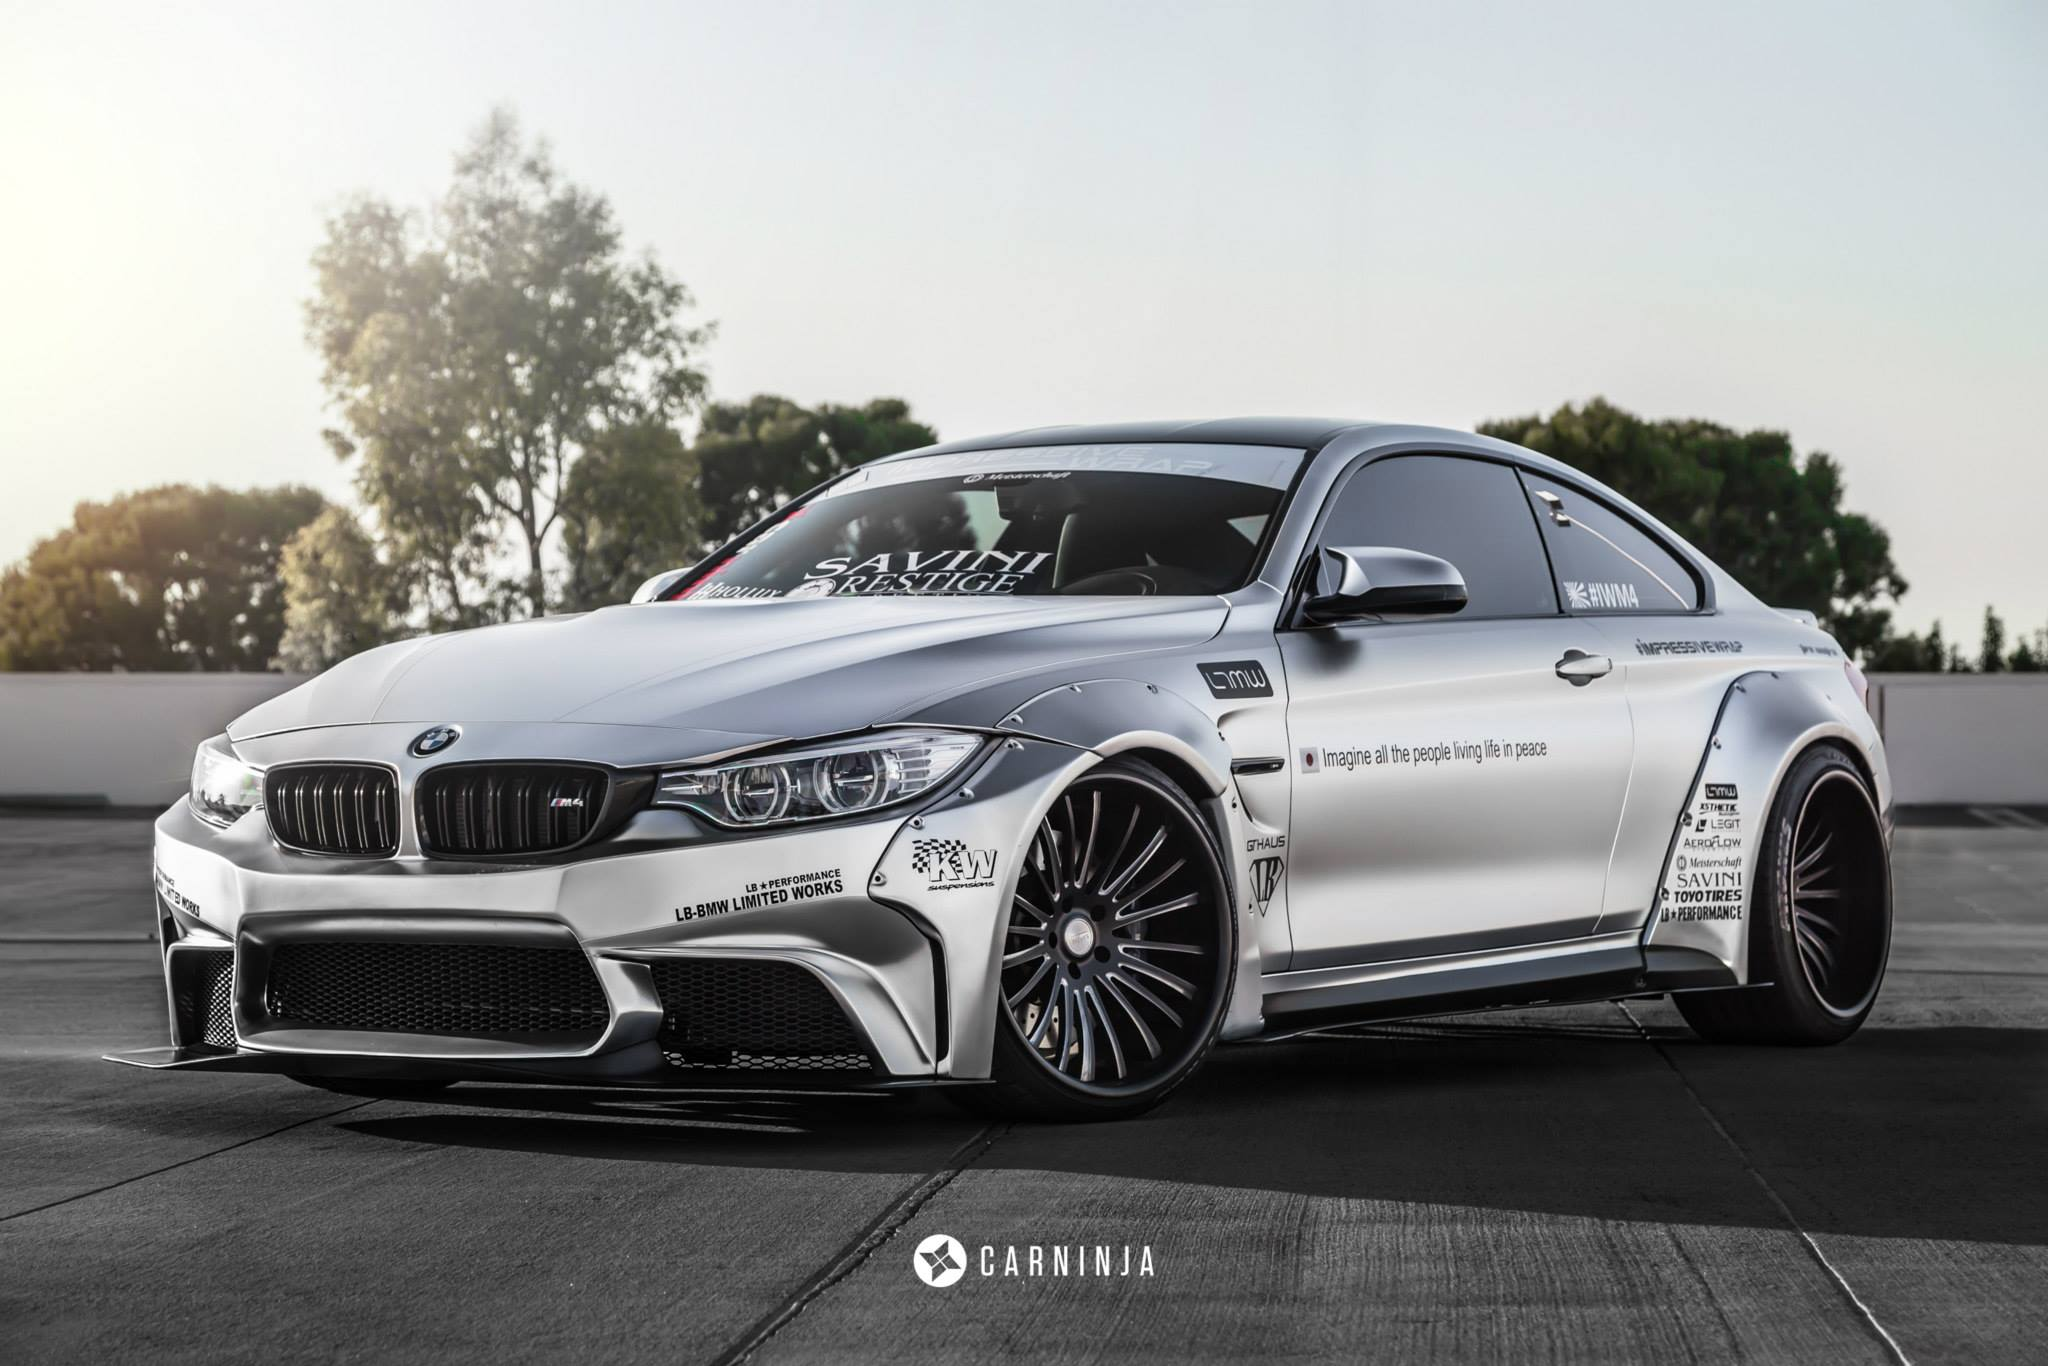 Hd Drift Car Wallpapers 1920x1080 Photoshoot Liberty Walk Bmw M4 Hartvoorautos Nl